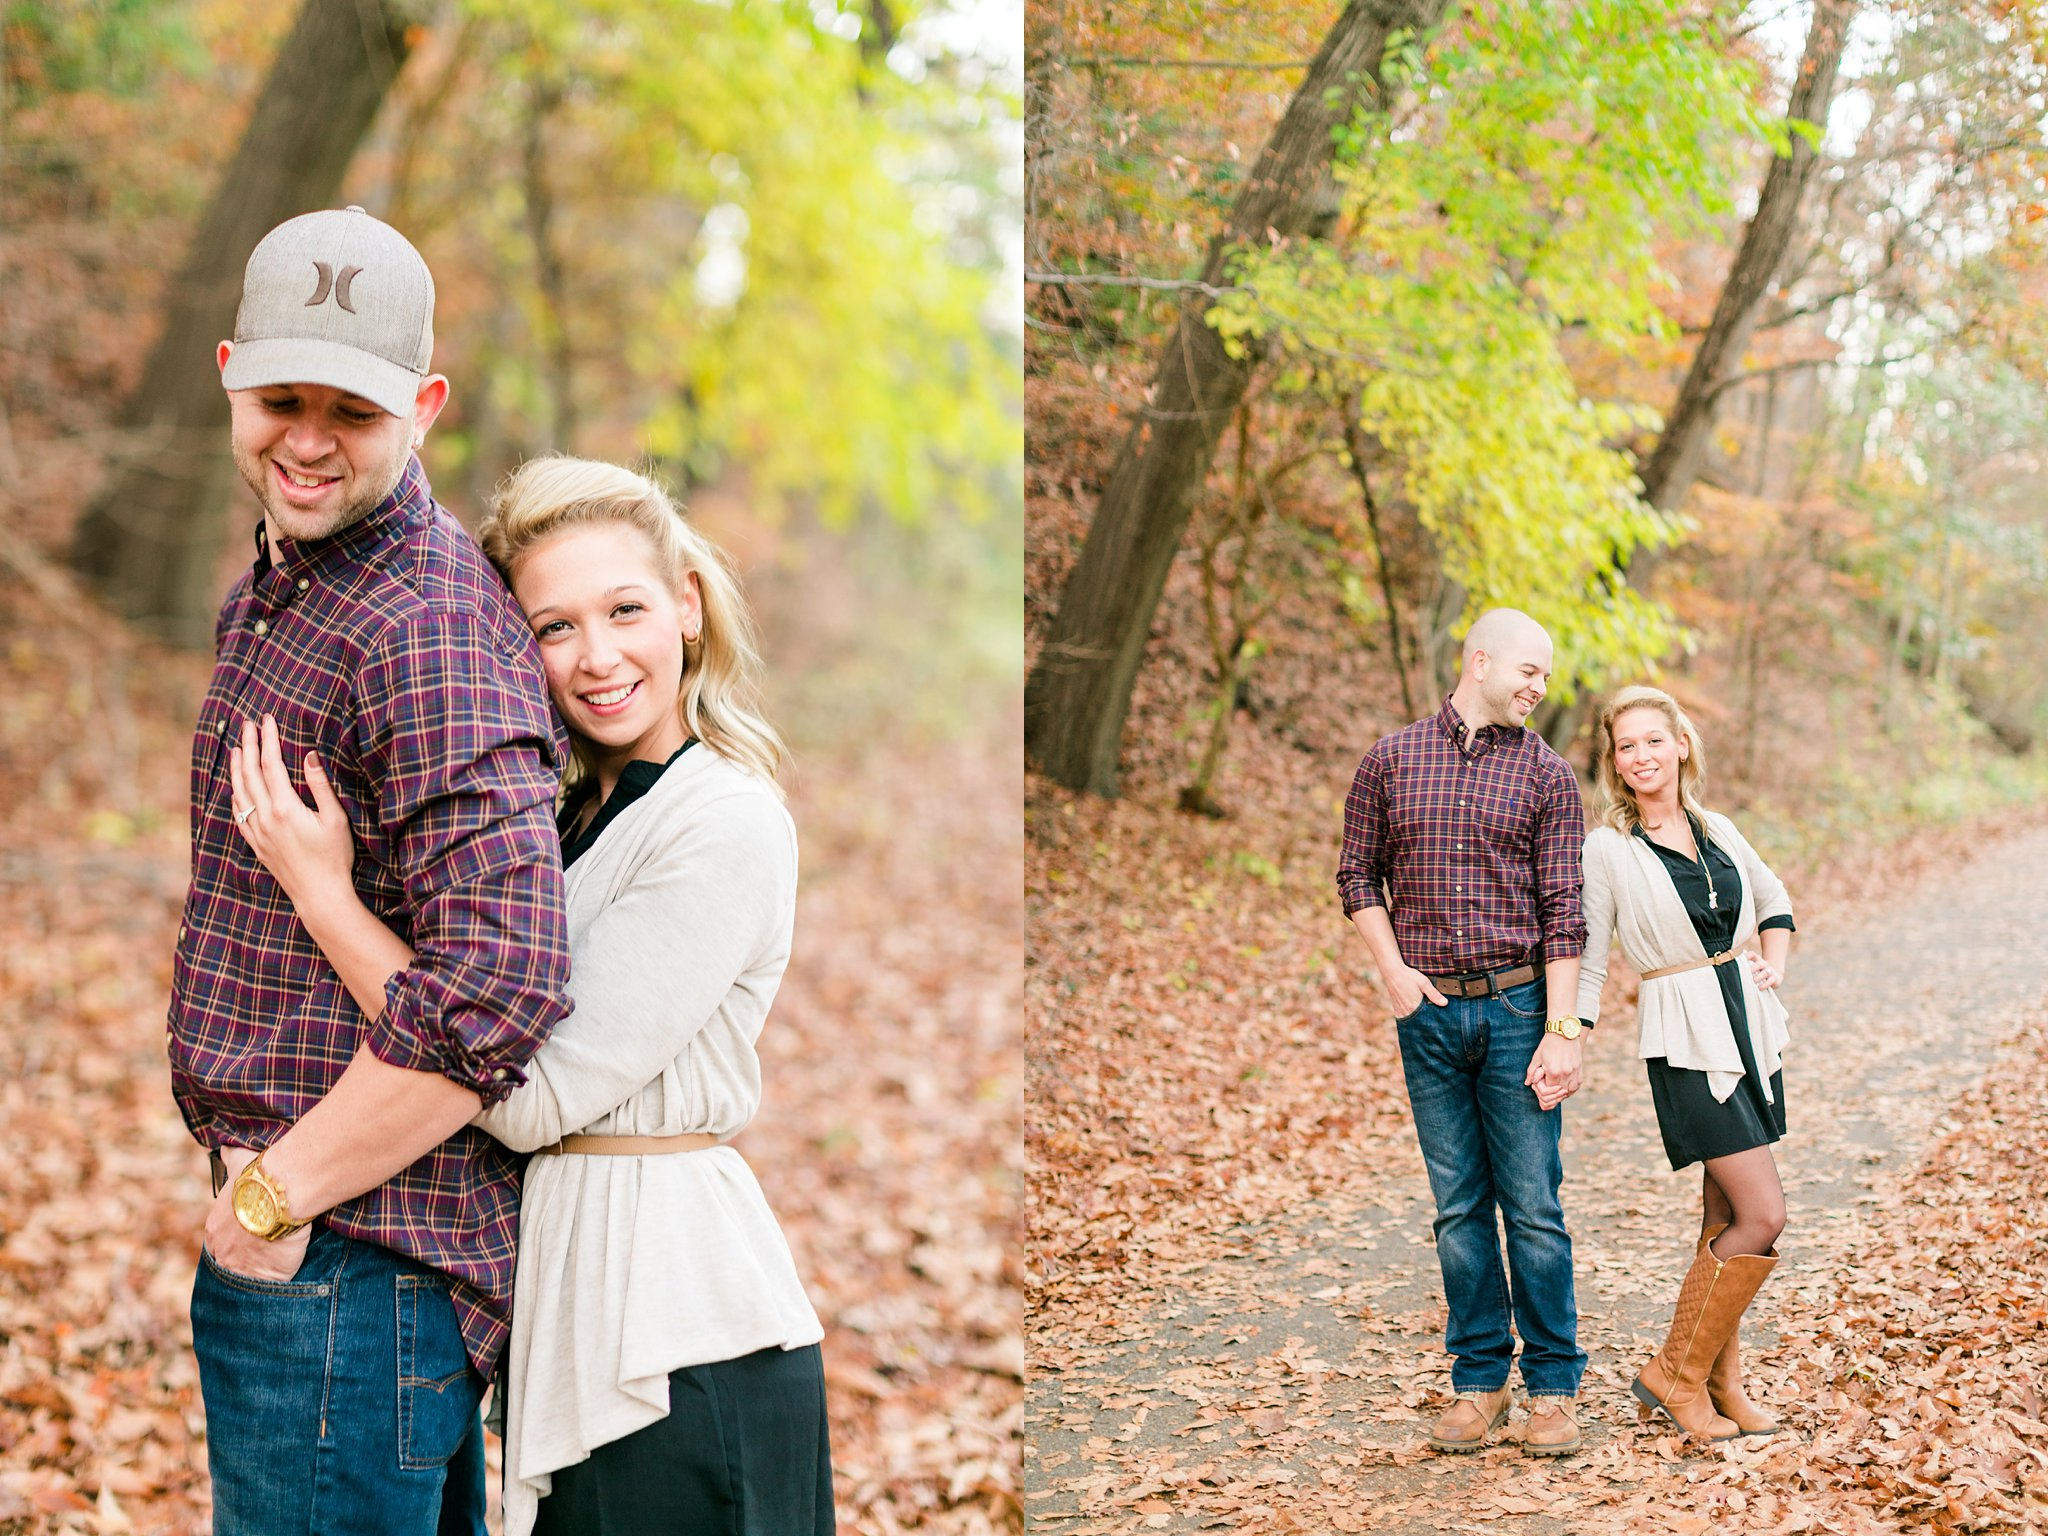 Rock Creek Park Engagement Photos DC Wedding Photographer Megan Kelsey Photography Katie & Conor-145.jpg